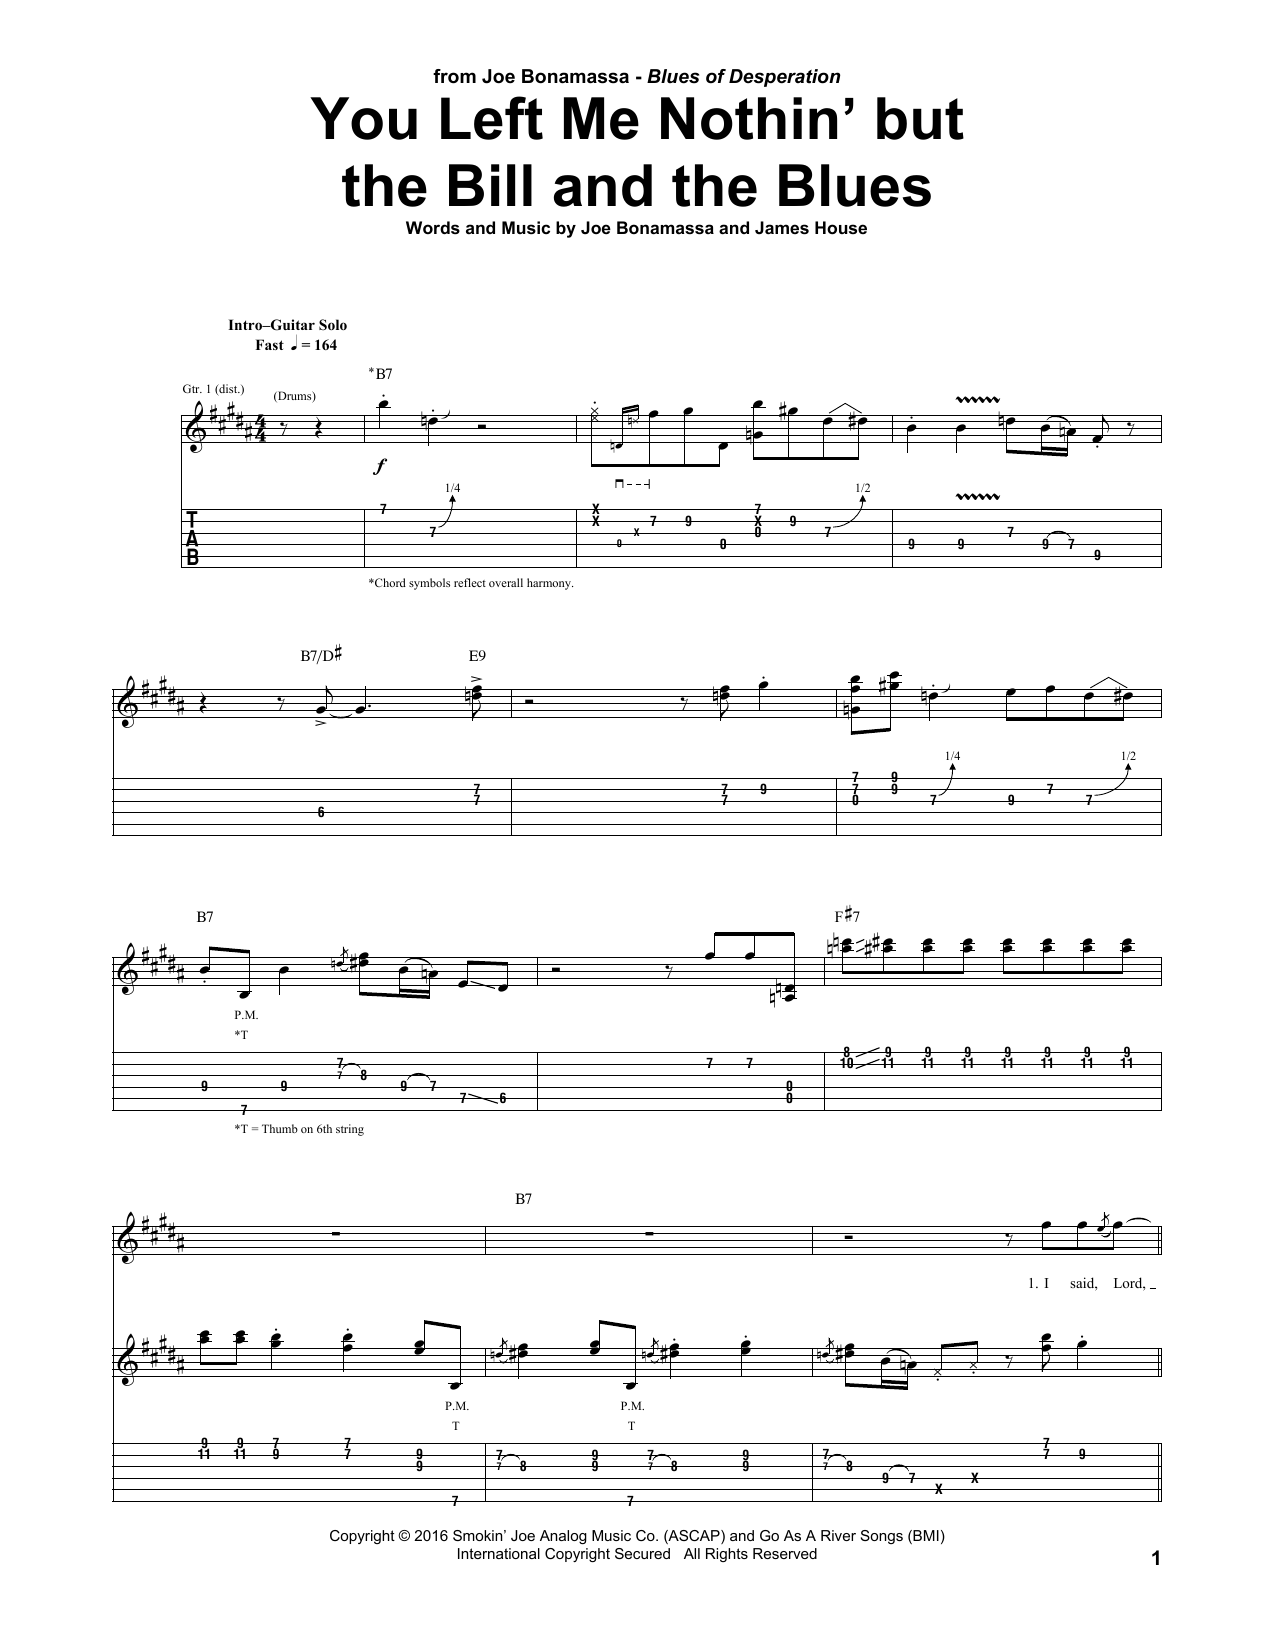 You Left Me Nothin But The Bill And The Blues Guitar Tab By Joe